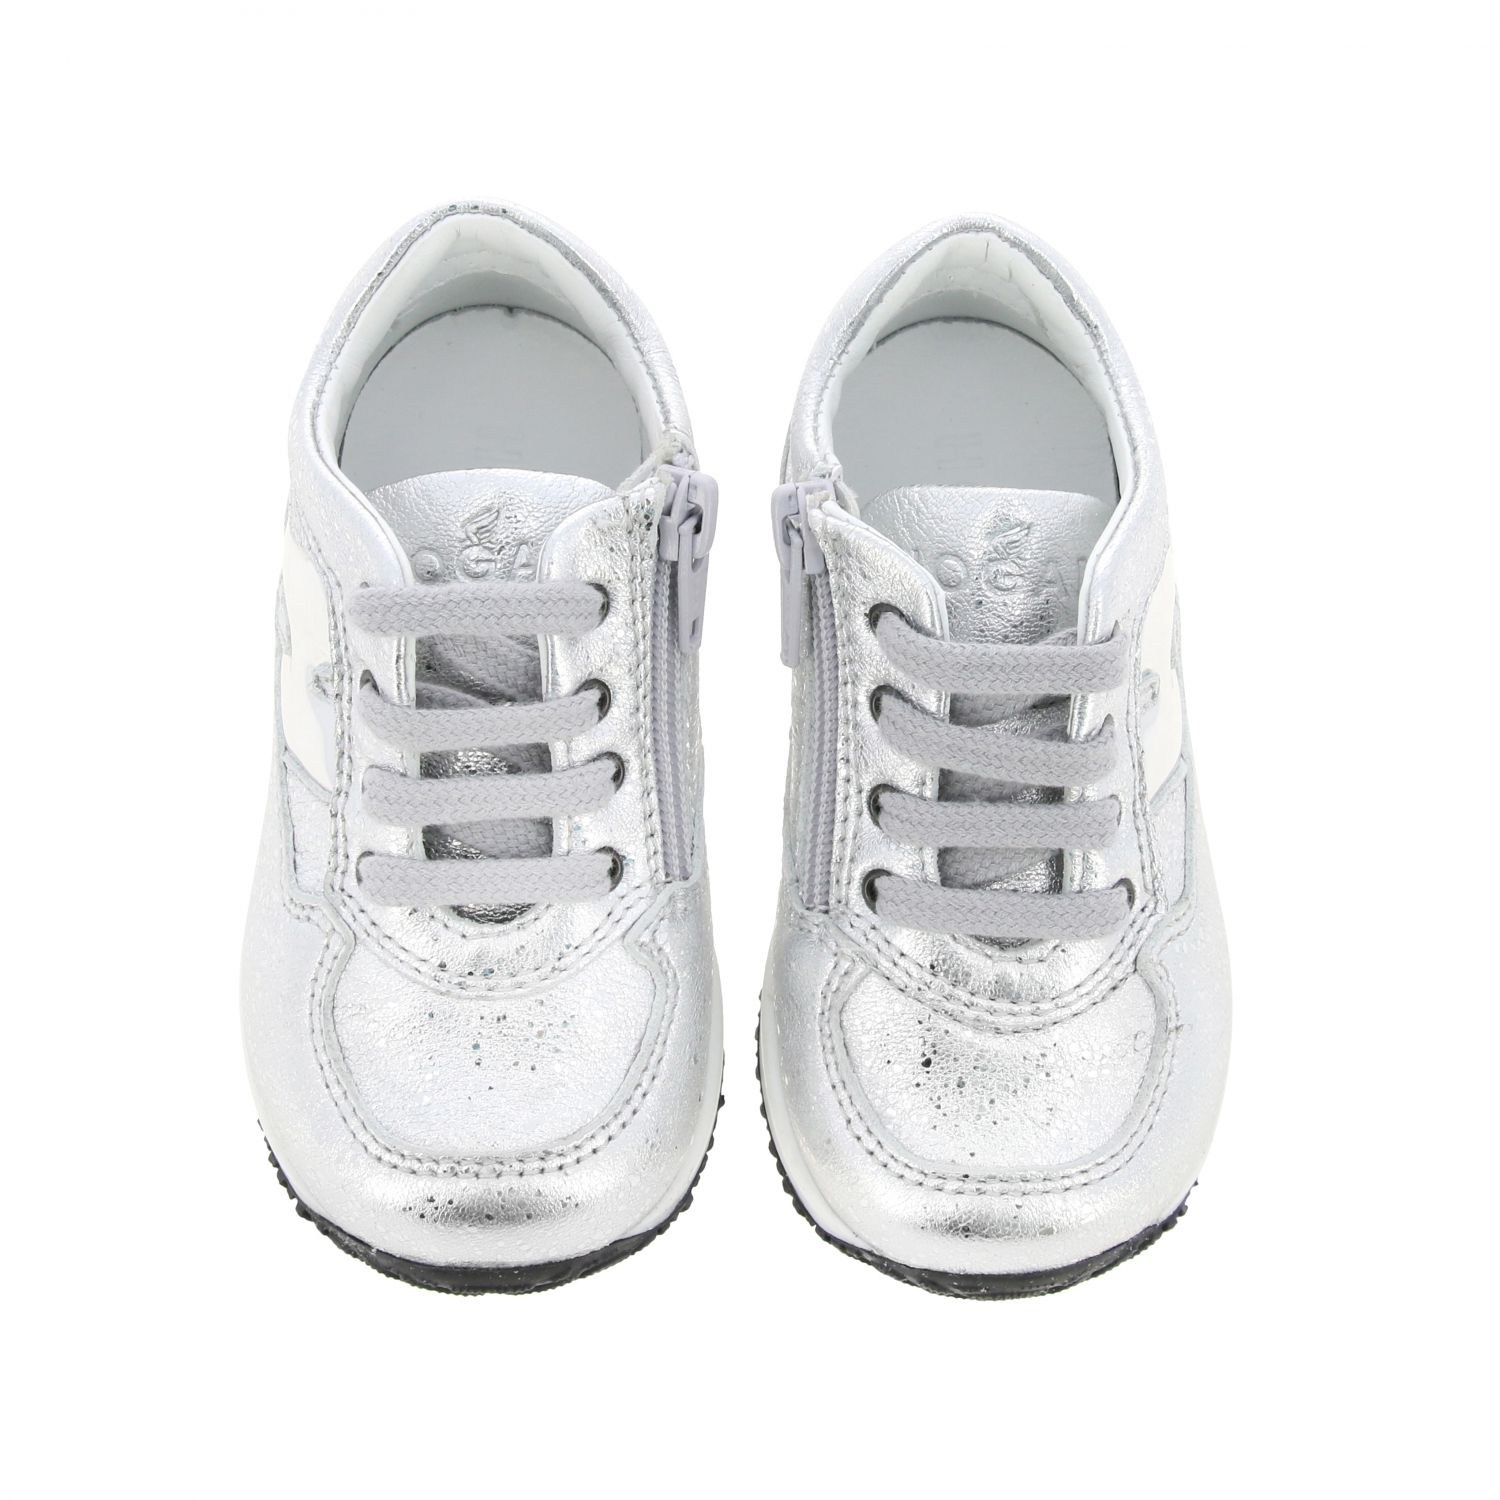 Shoes Hogan Baby: Shoes kids Hogan Baby silver 3